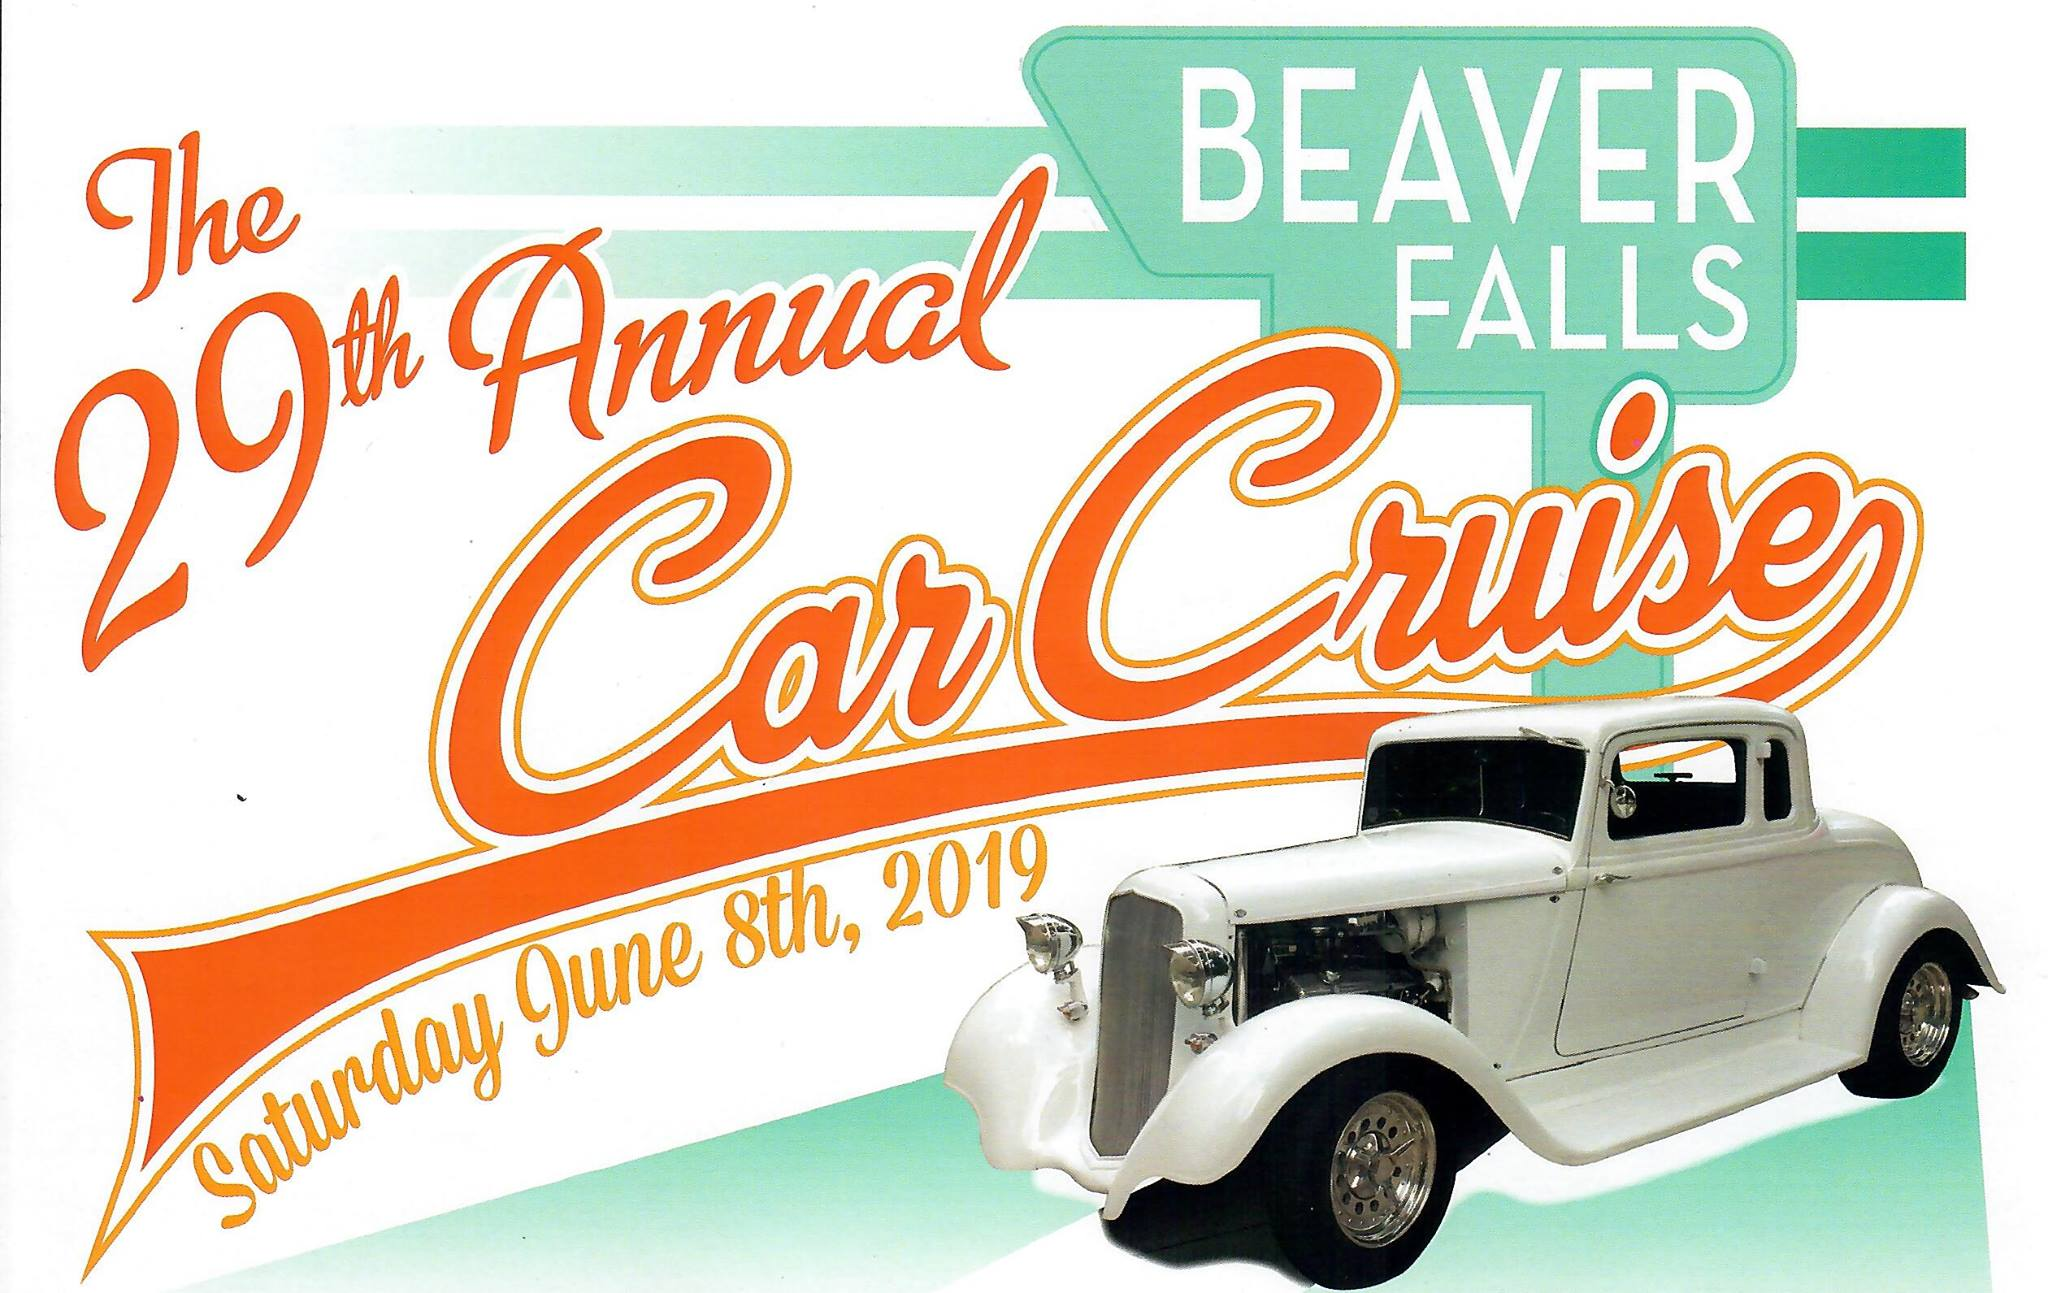 Hutch & Home is a proud sponsor of the 2019 Beaver Falls Car Cruise!